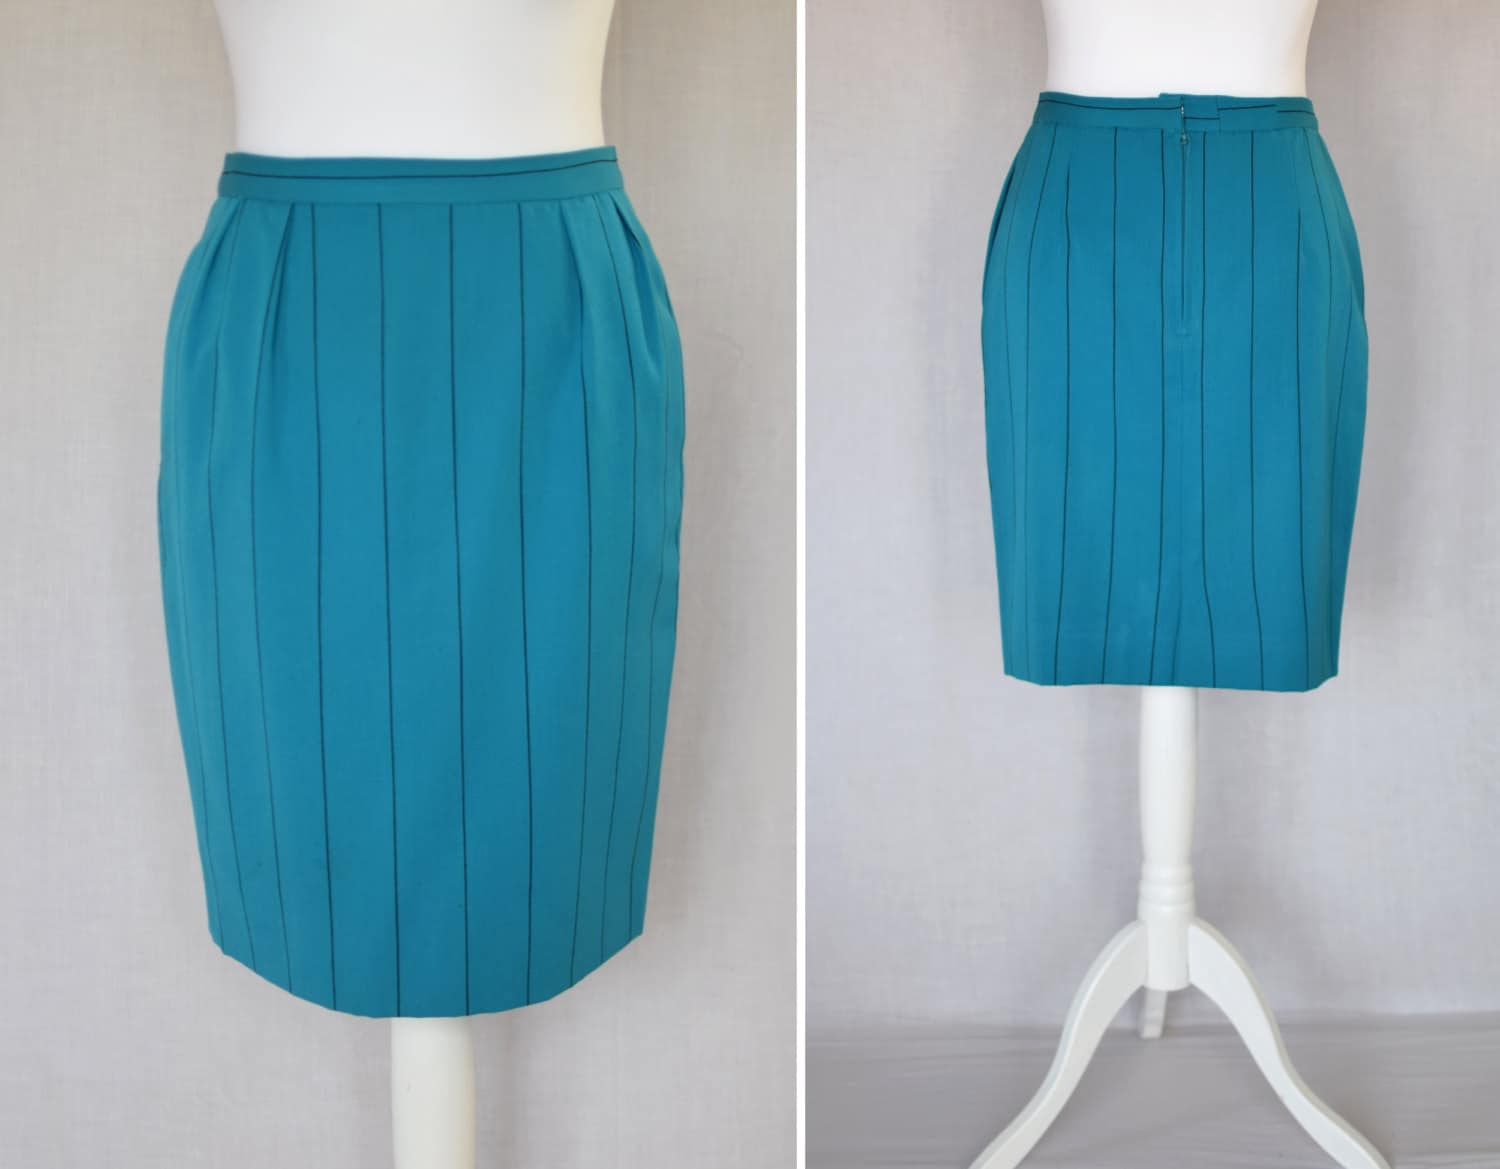 pencil skirt vintage bright turquoise blue with black